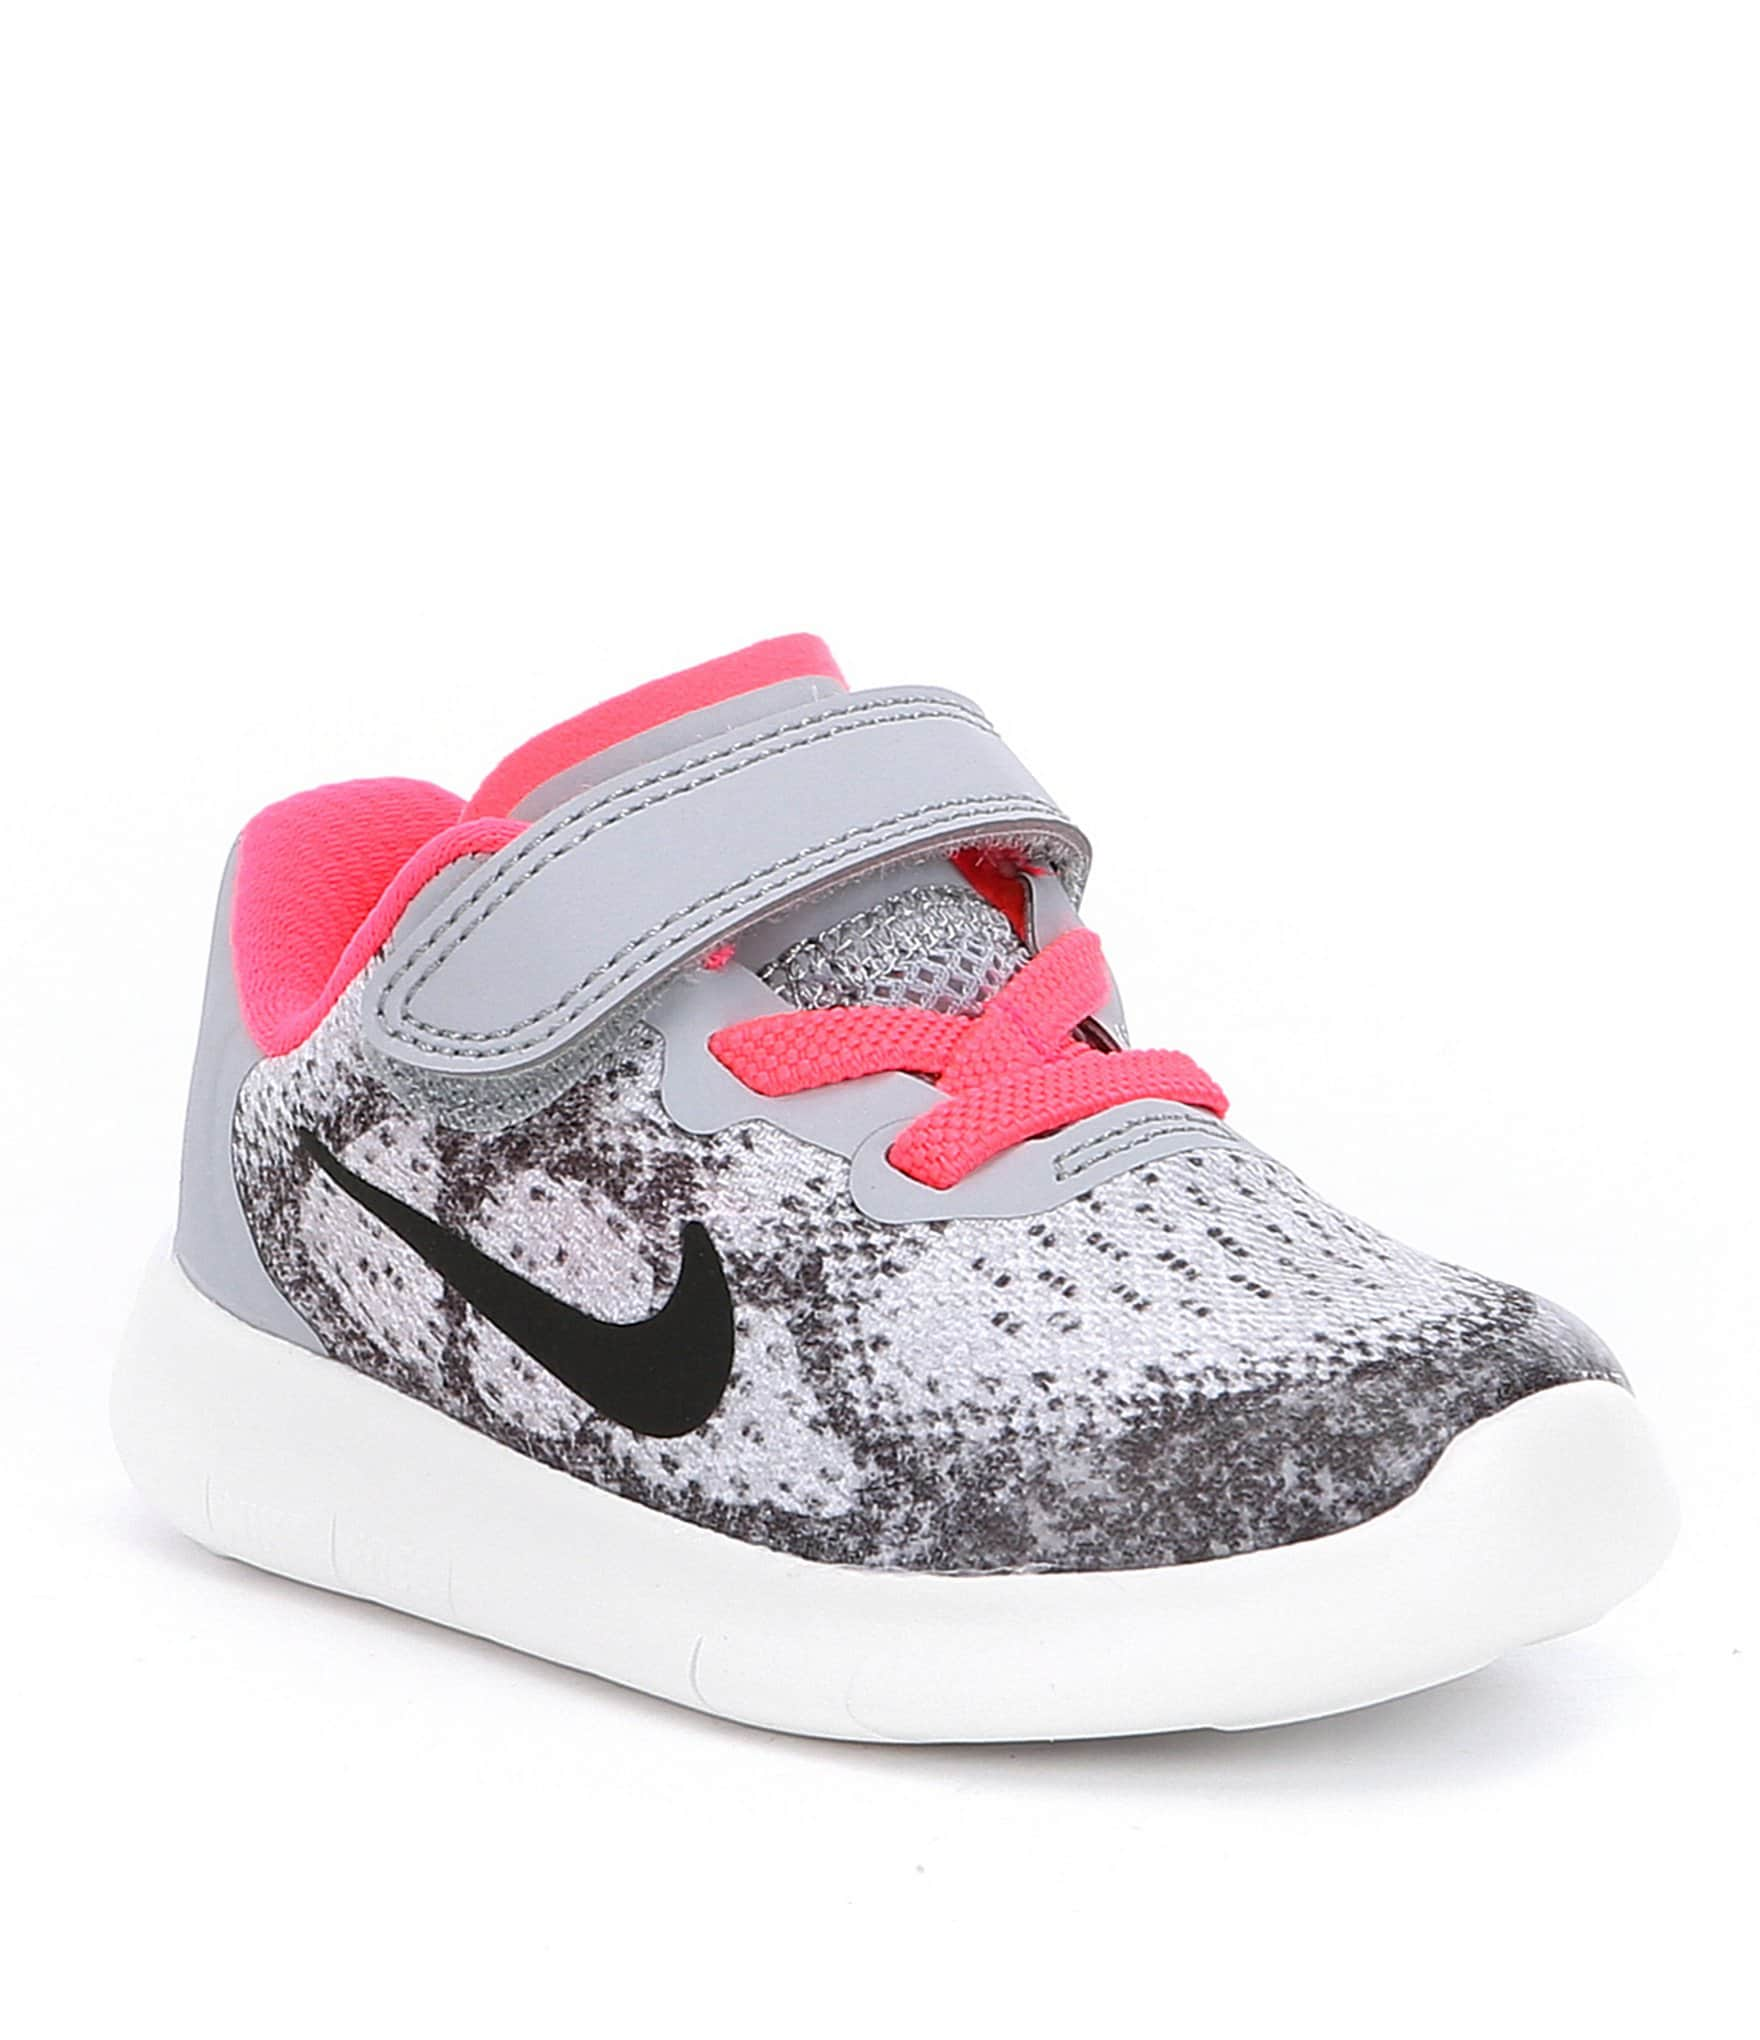 Childrens Shoes Mobile Al Style Guru Fashion Glitz